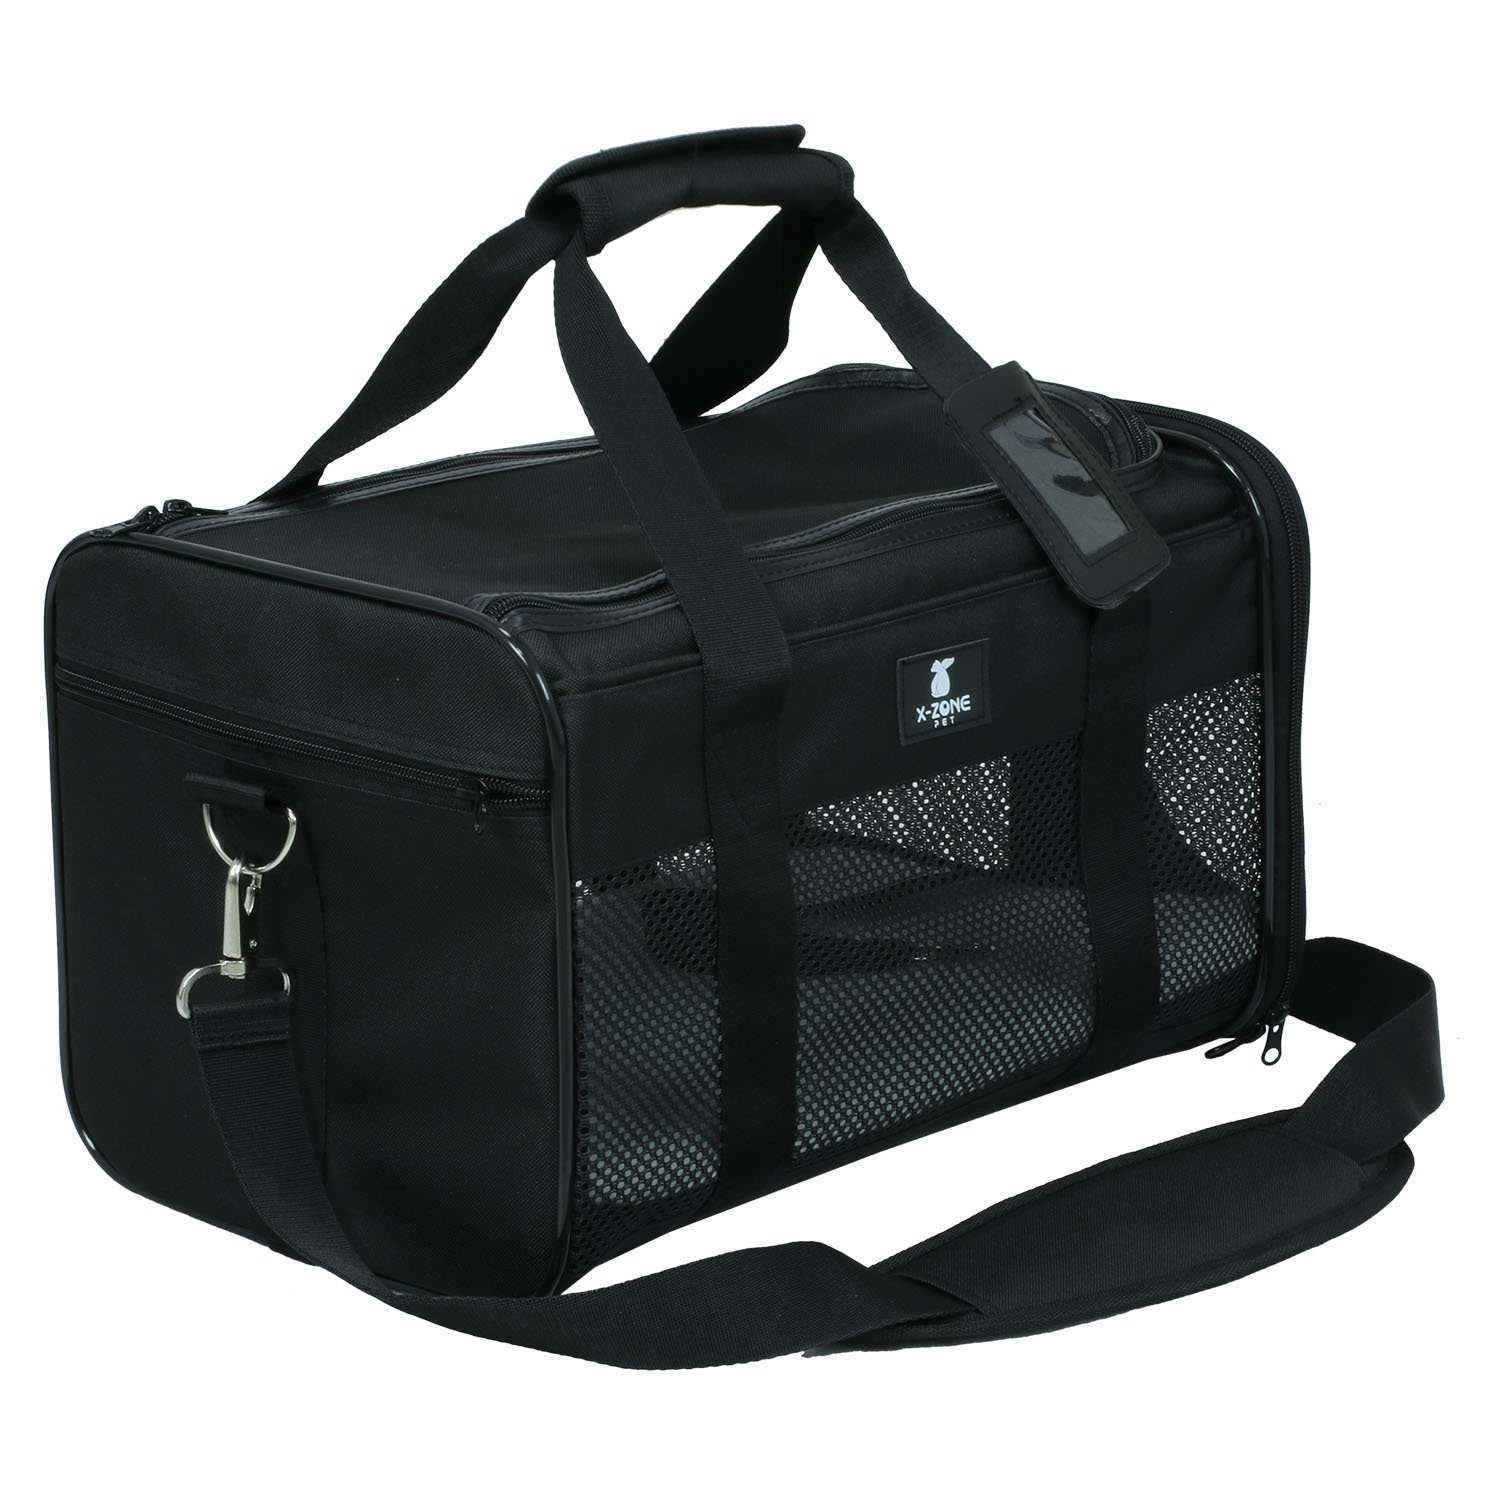 X-ZONE PET Airline Approved Soft-Sided Pet Travel Carrier for Dogs and Cats, Black (Large)